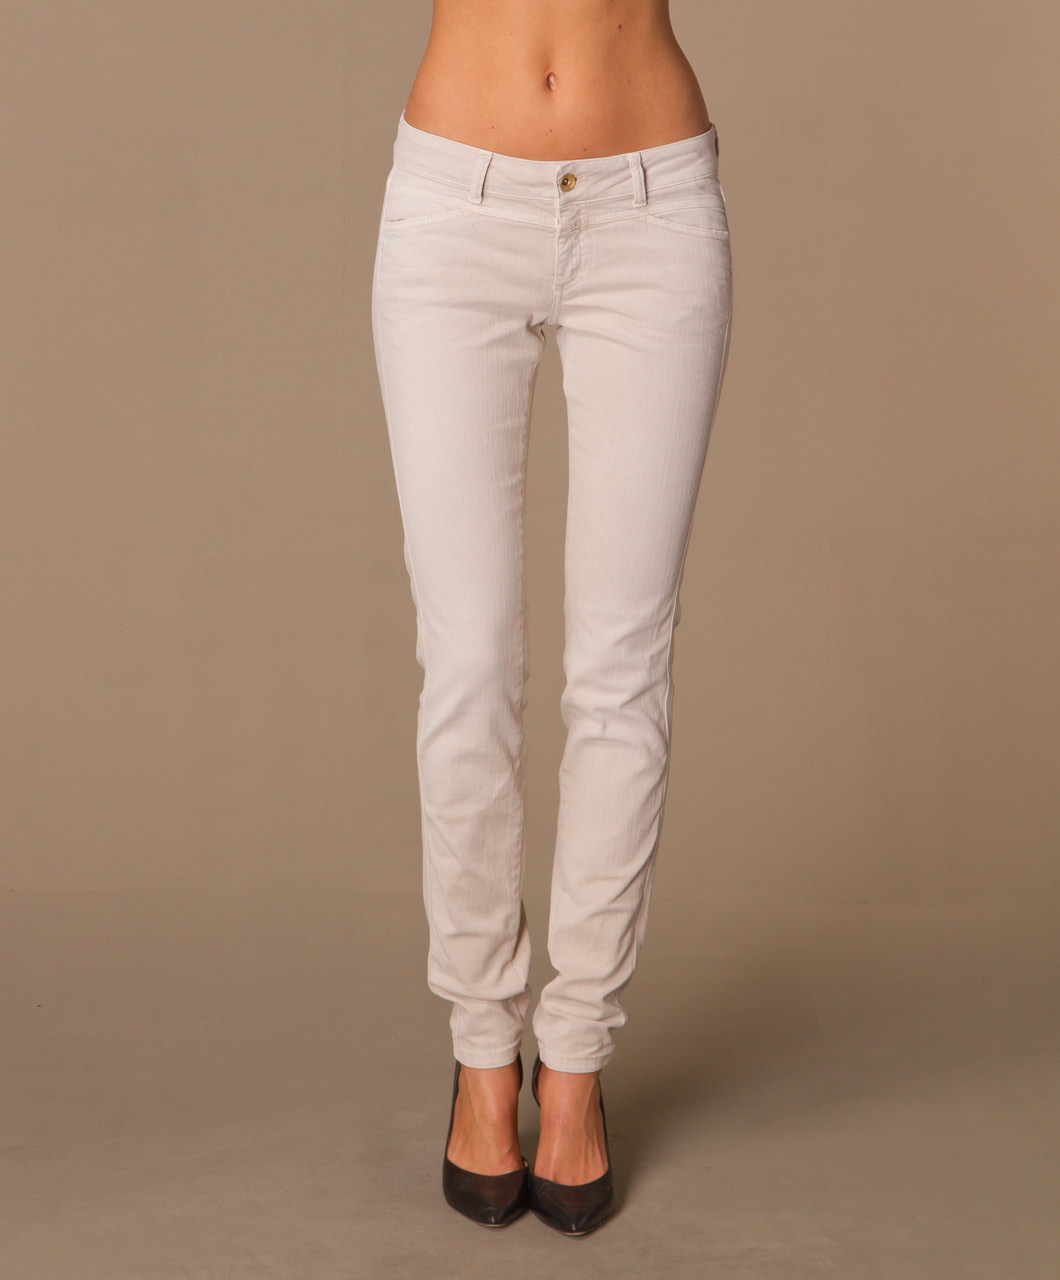 The Fancy Beige Jeans